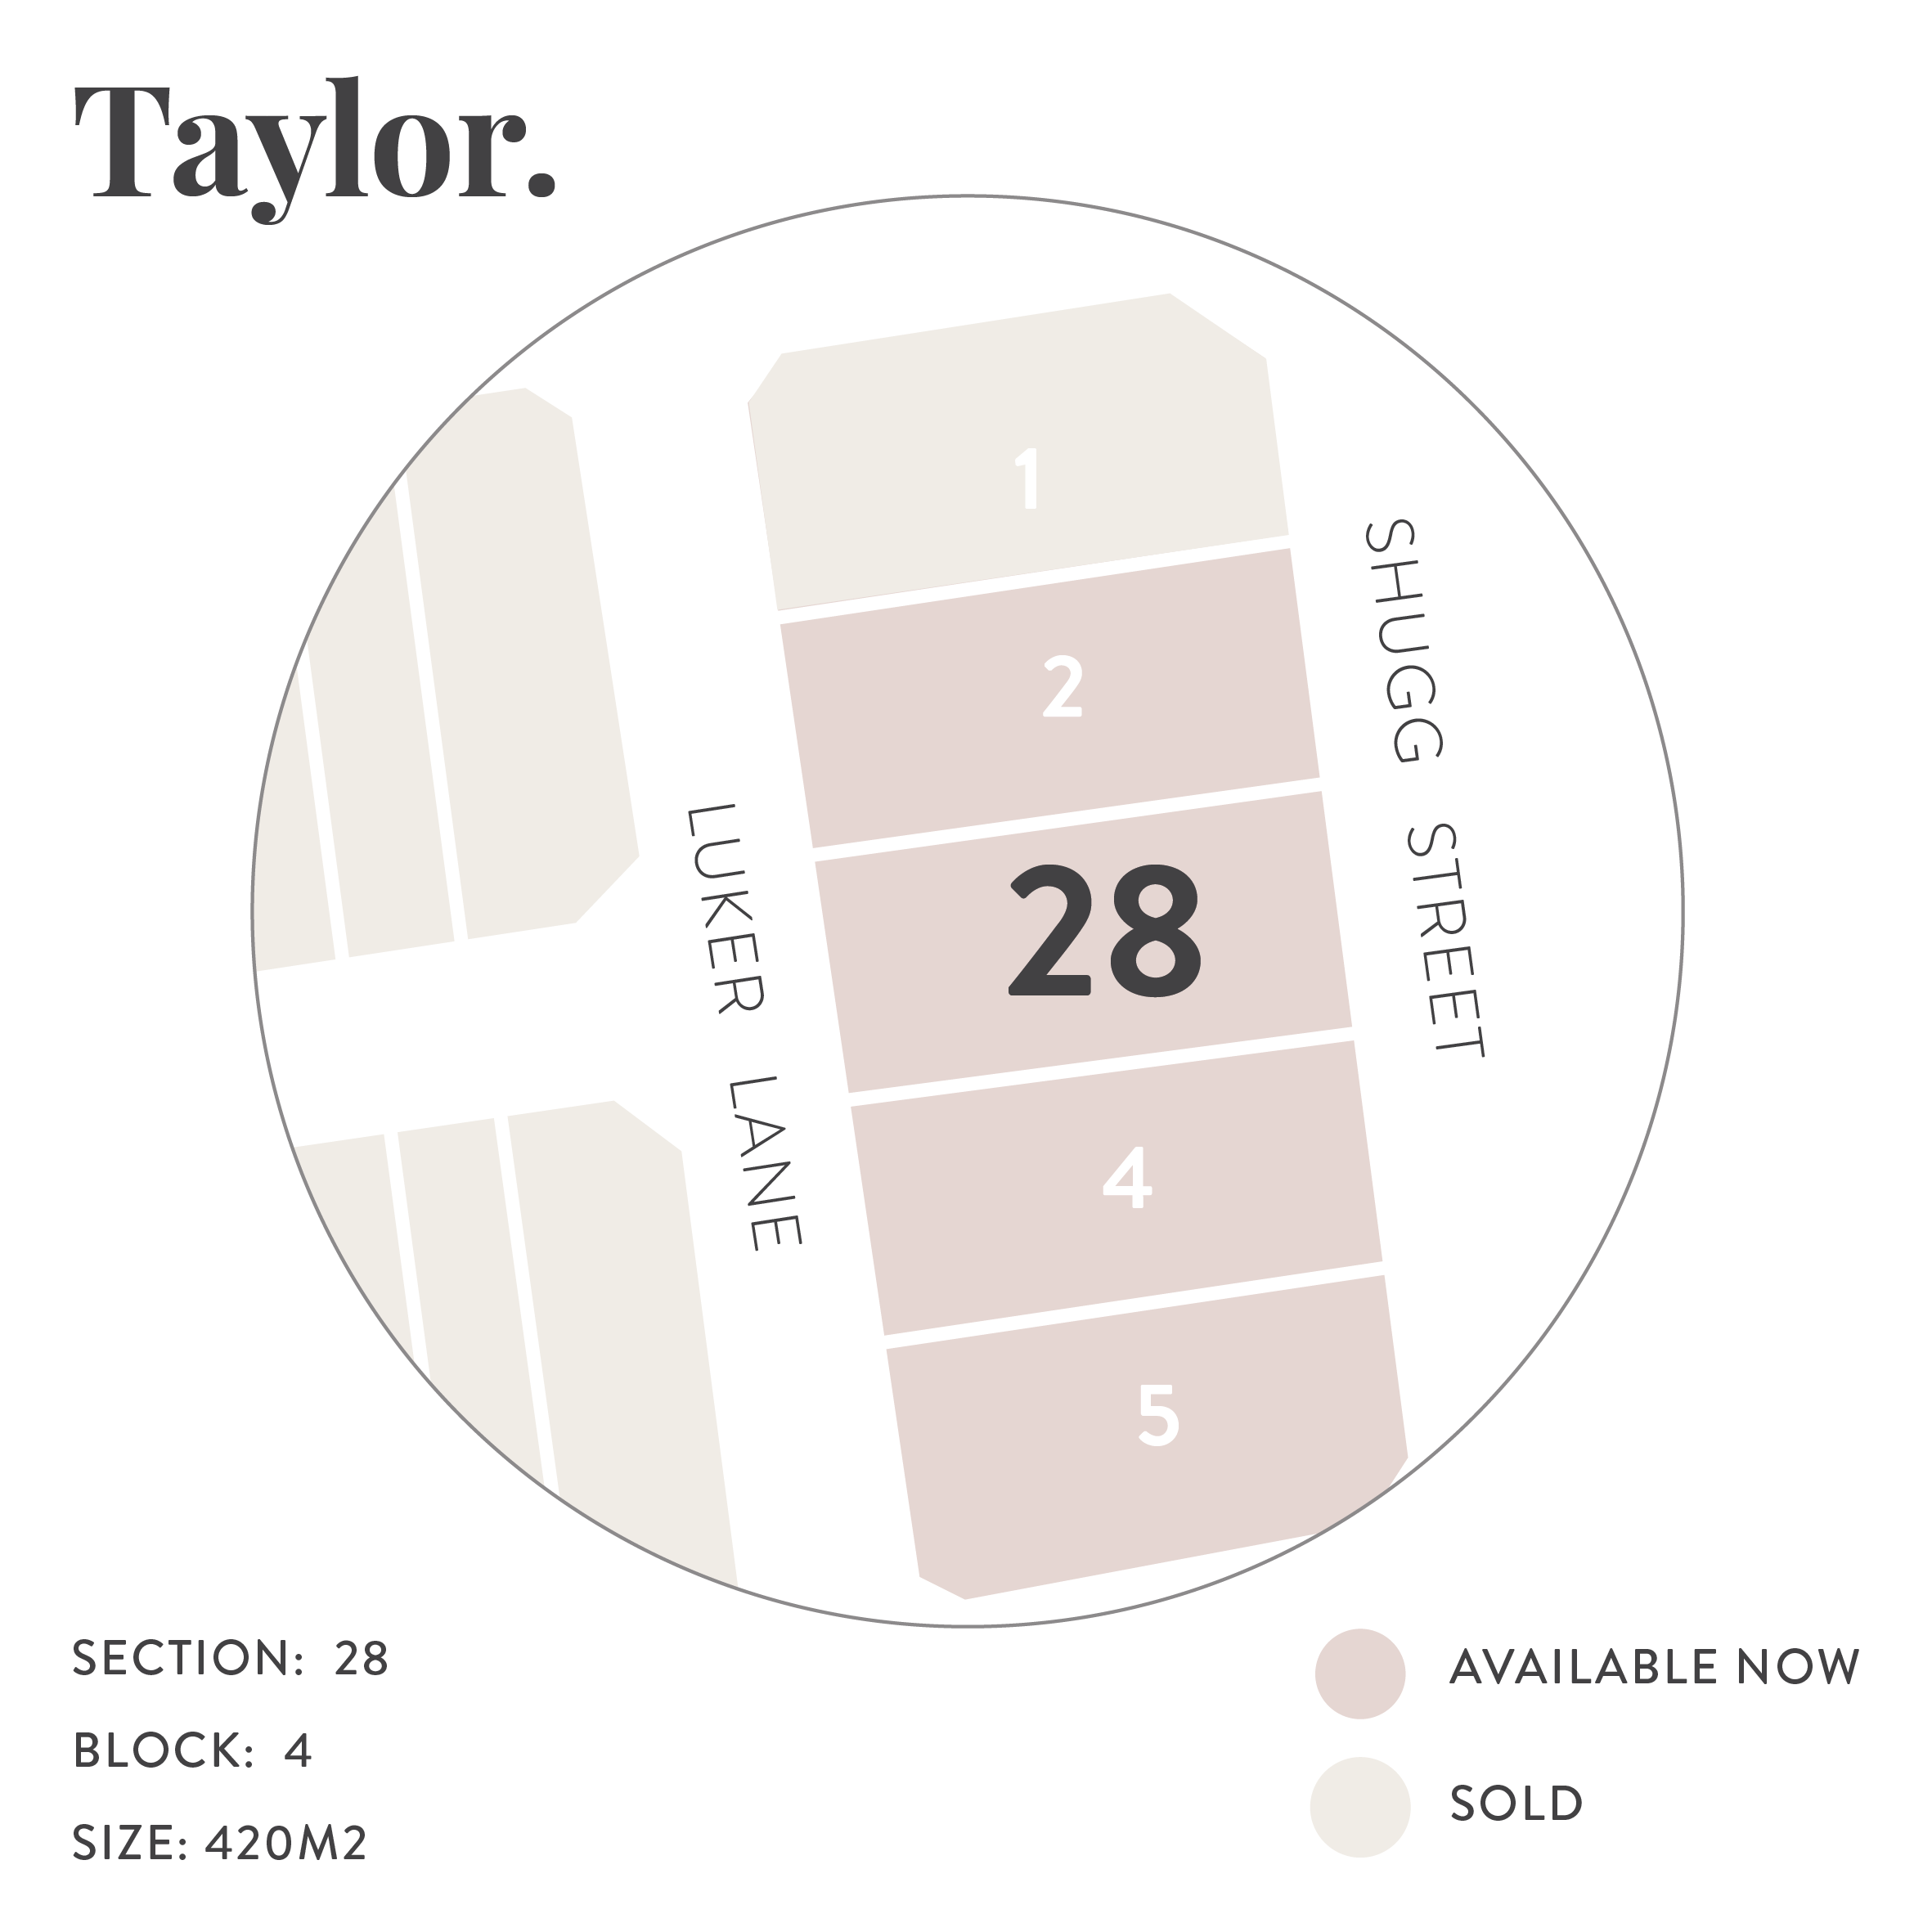 Taylor Land Images-04.png